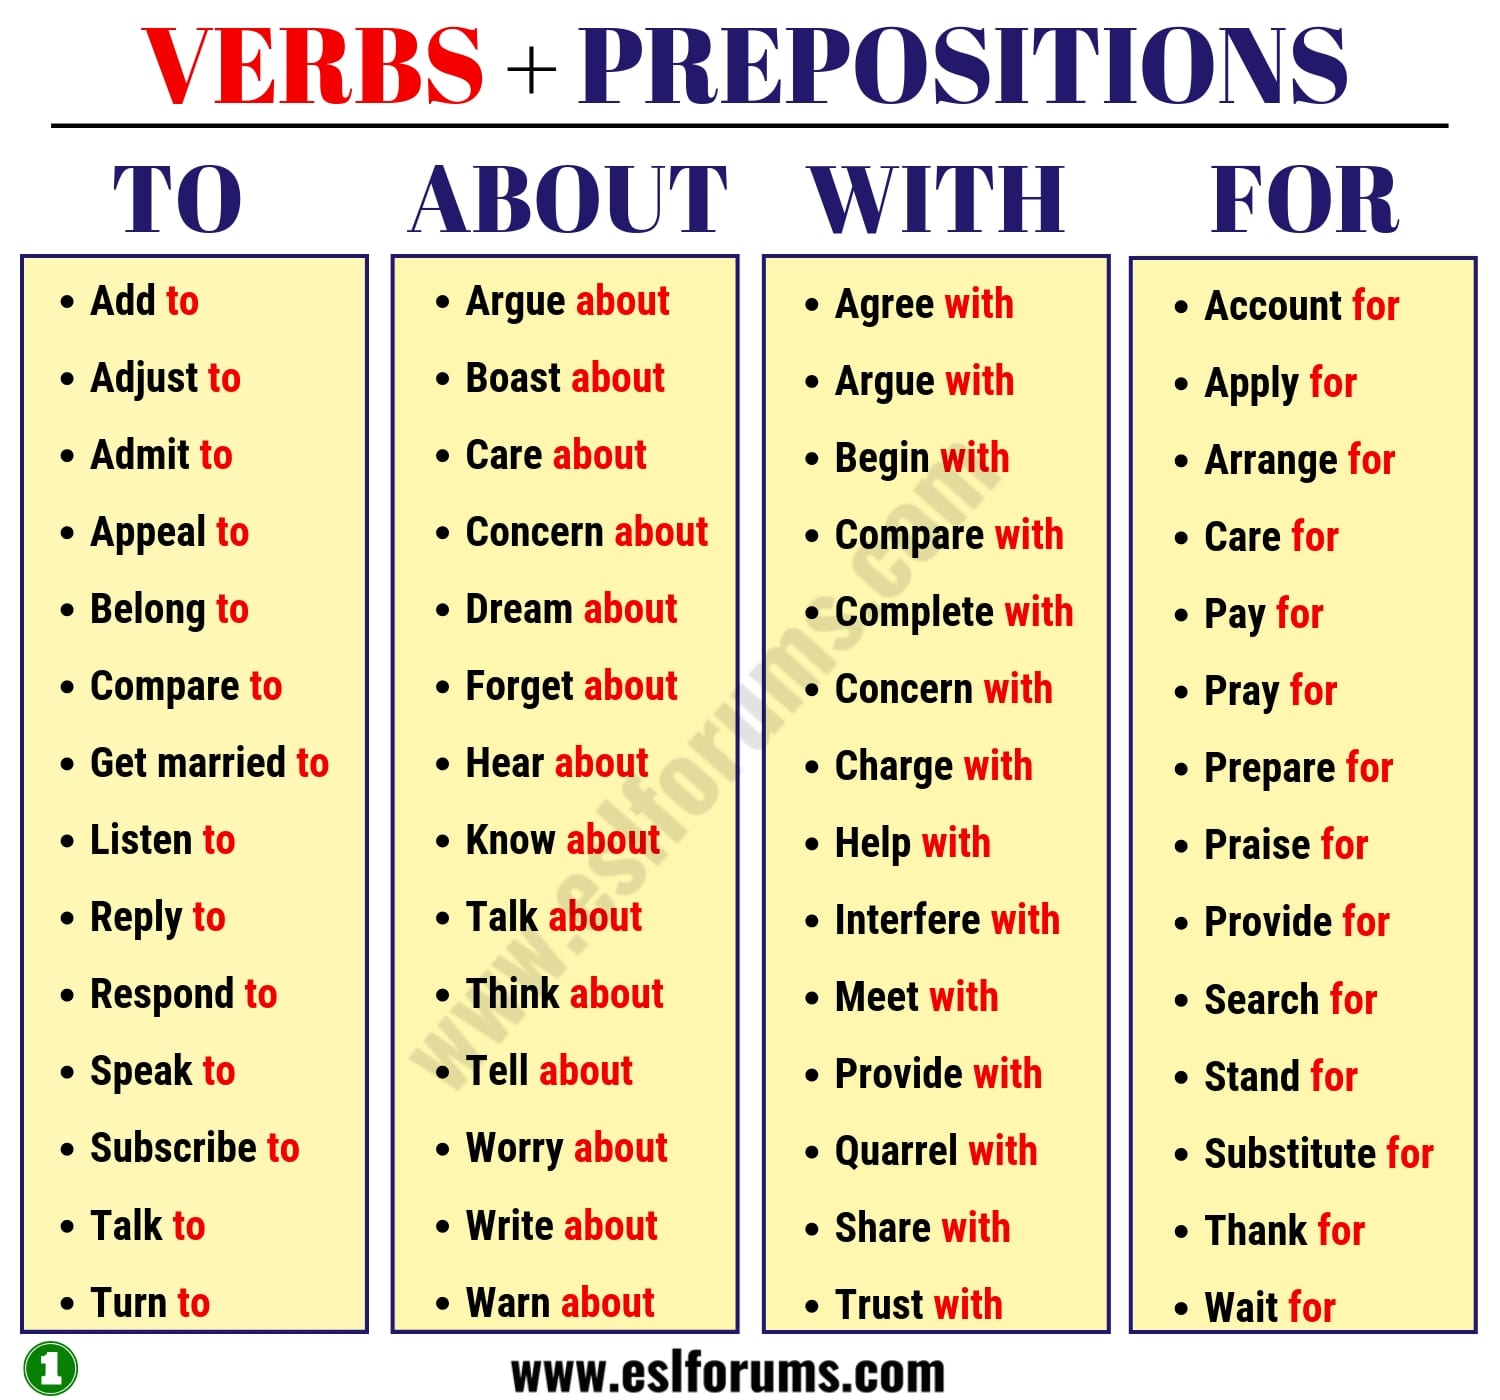 Verbs and Prepositions Combinations